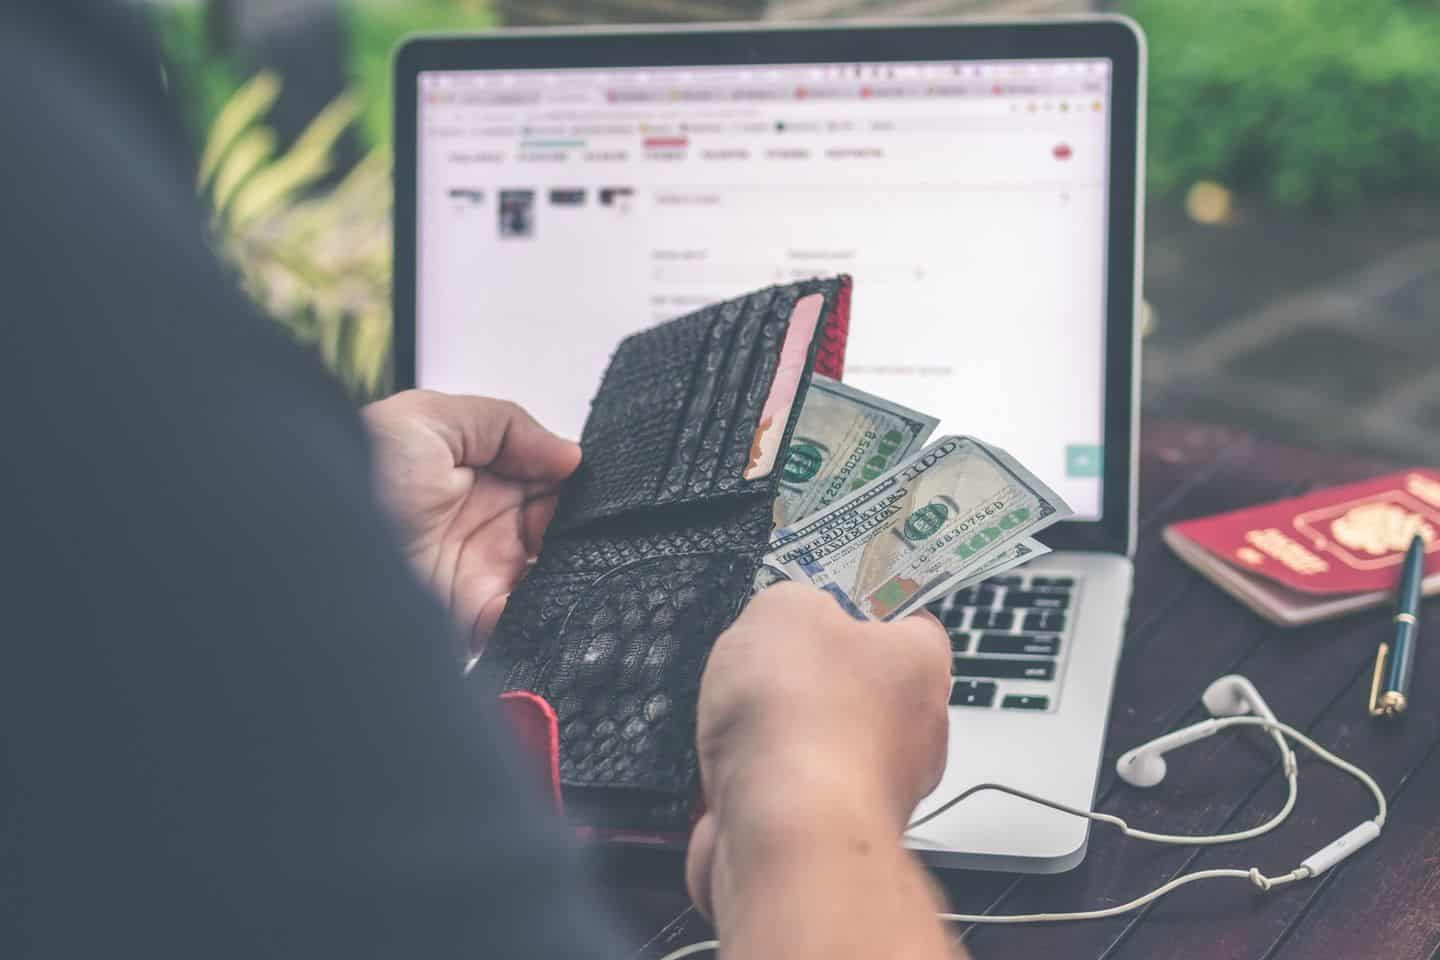 Mix · 25 Proven Ways to Get Free Money (from Companies)